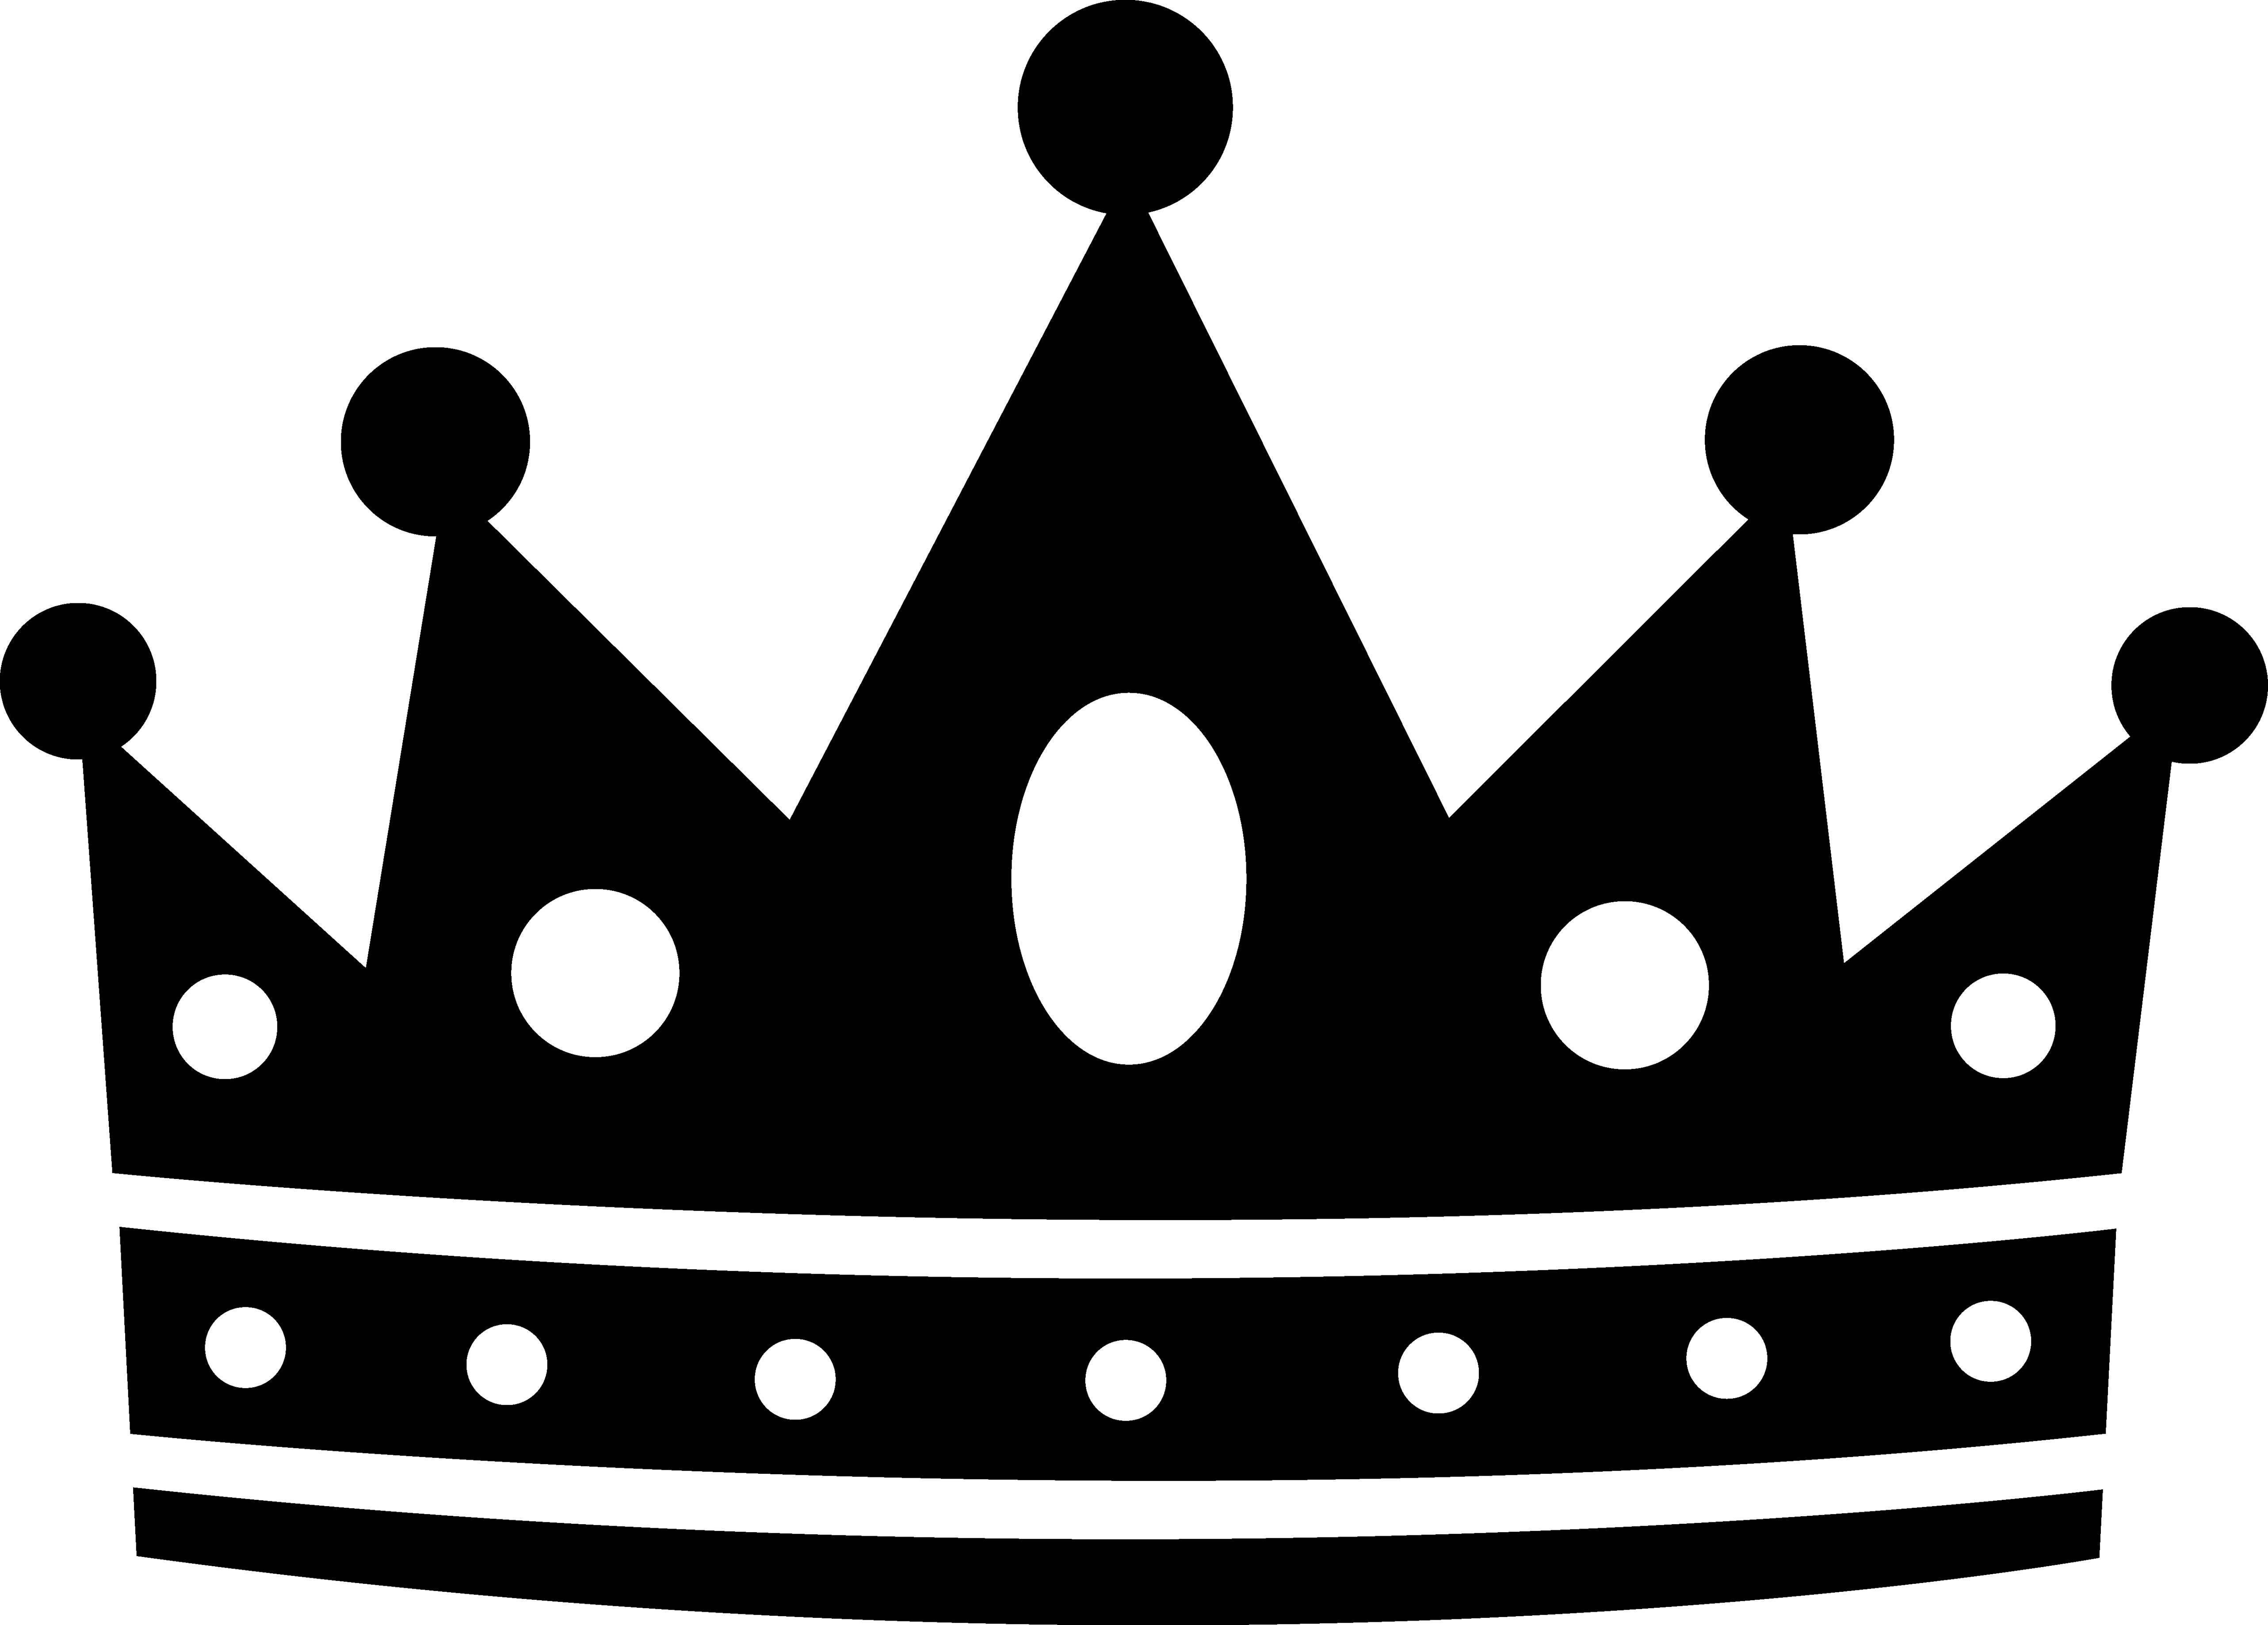 Kings hd transparent images. Crown clip art png vector freeuse